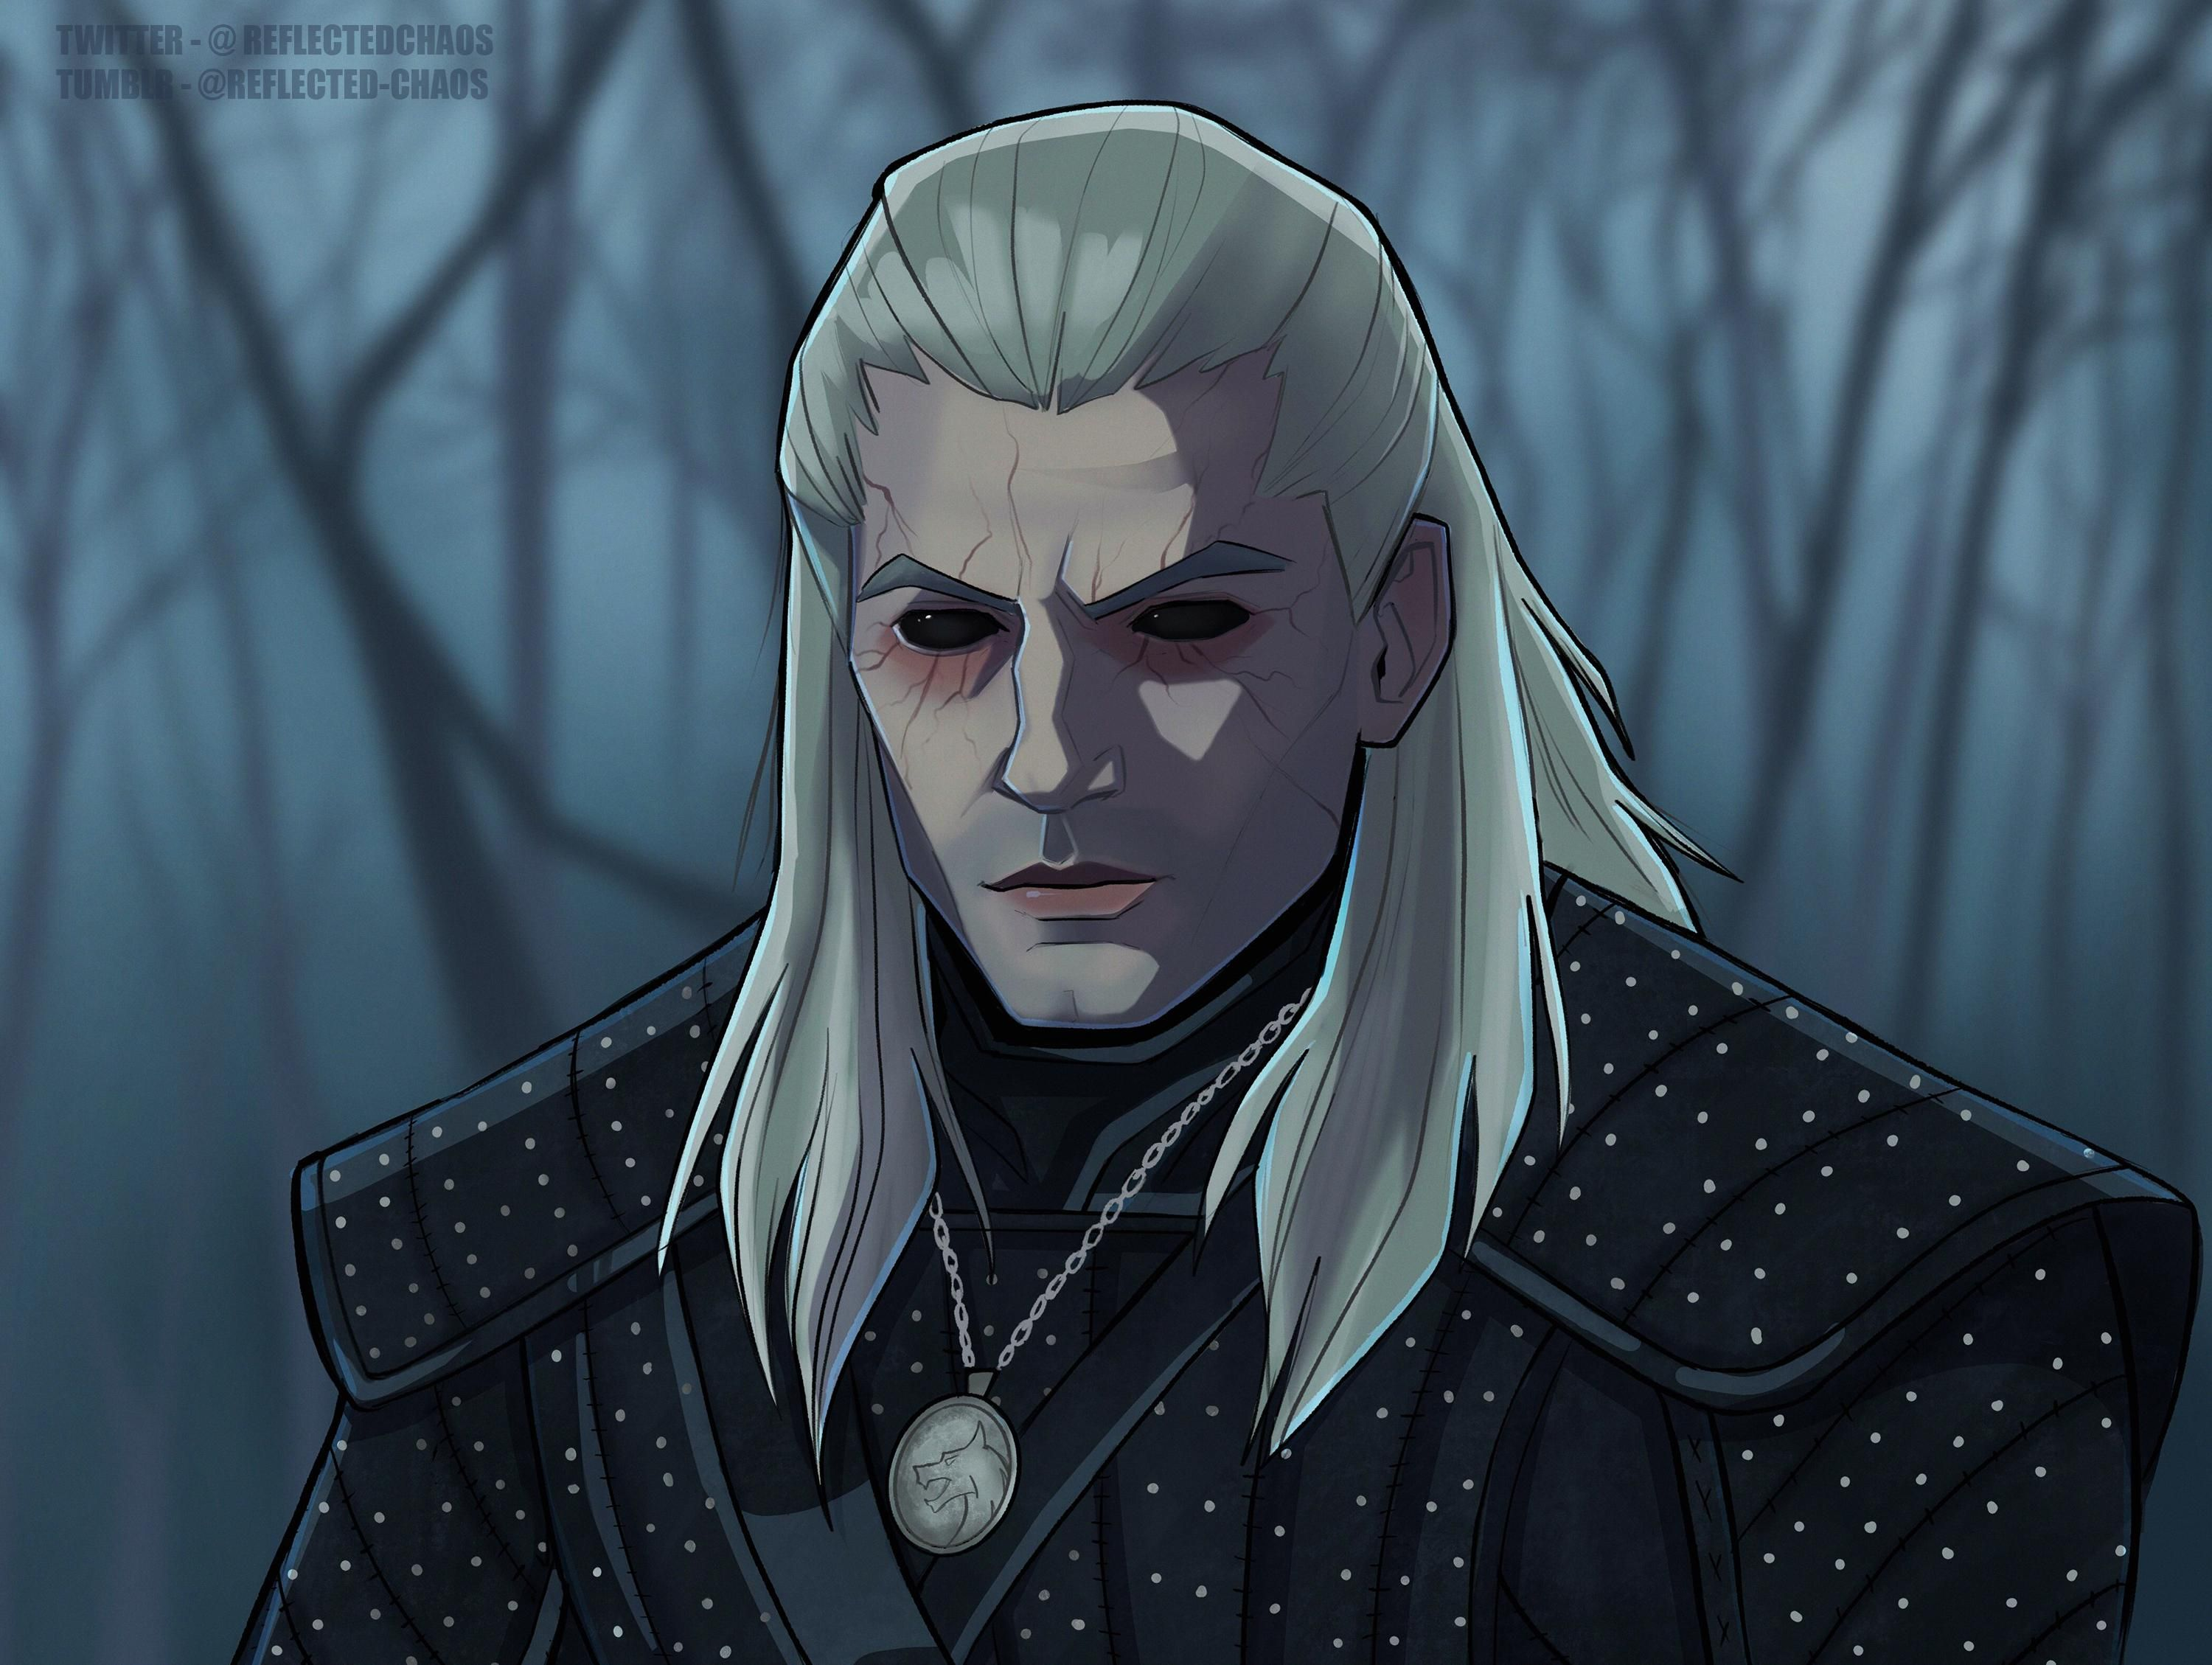 My Fan Art Of Geralt From The Witcher Netflix Series Witcher In